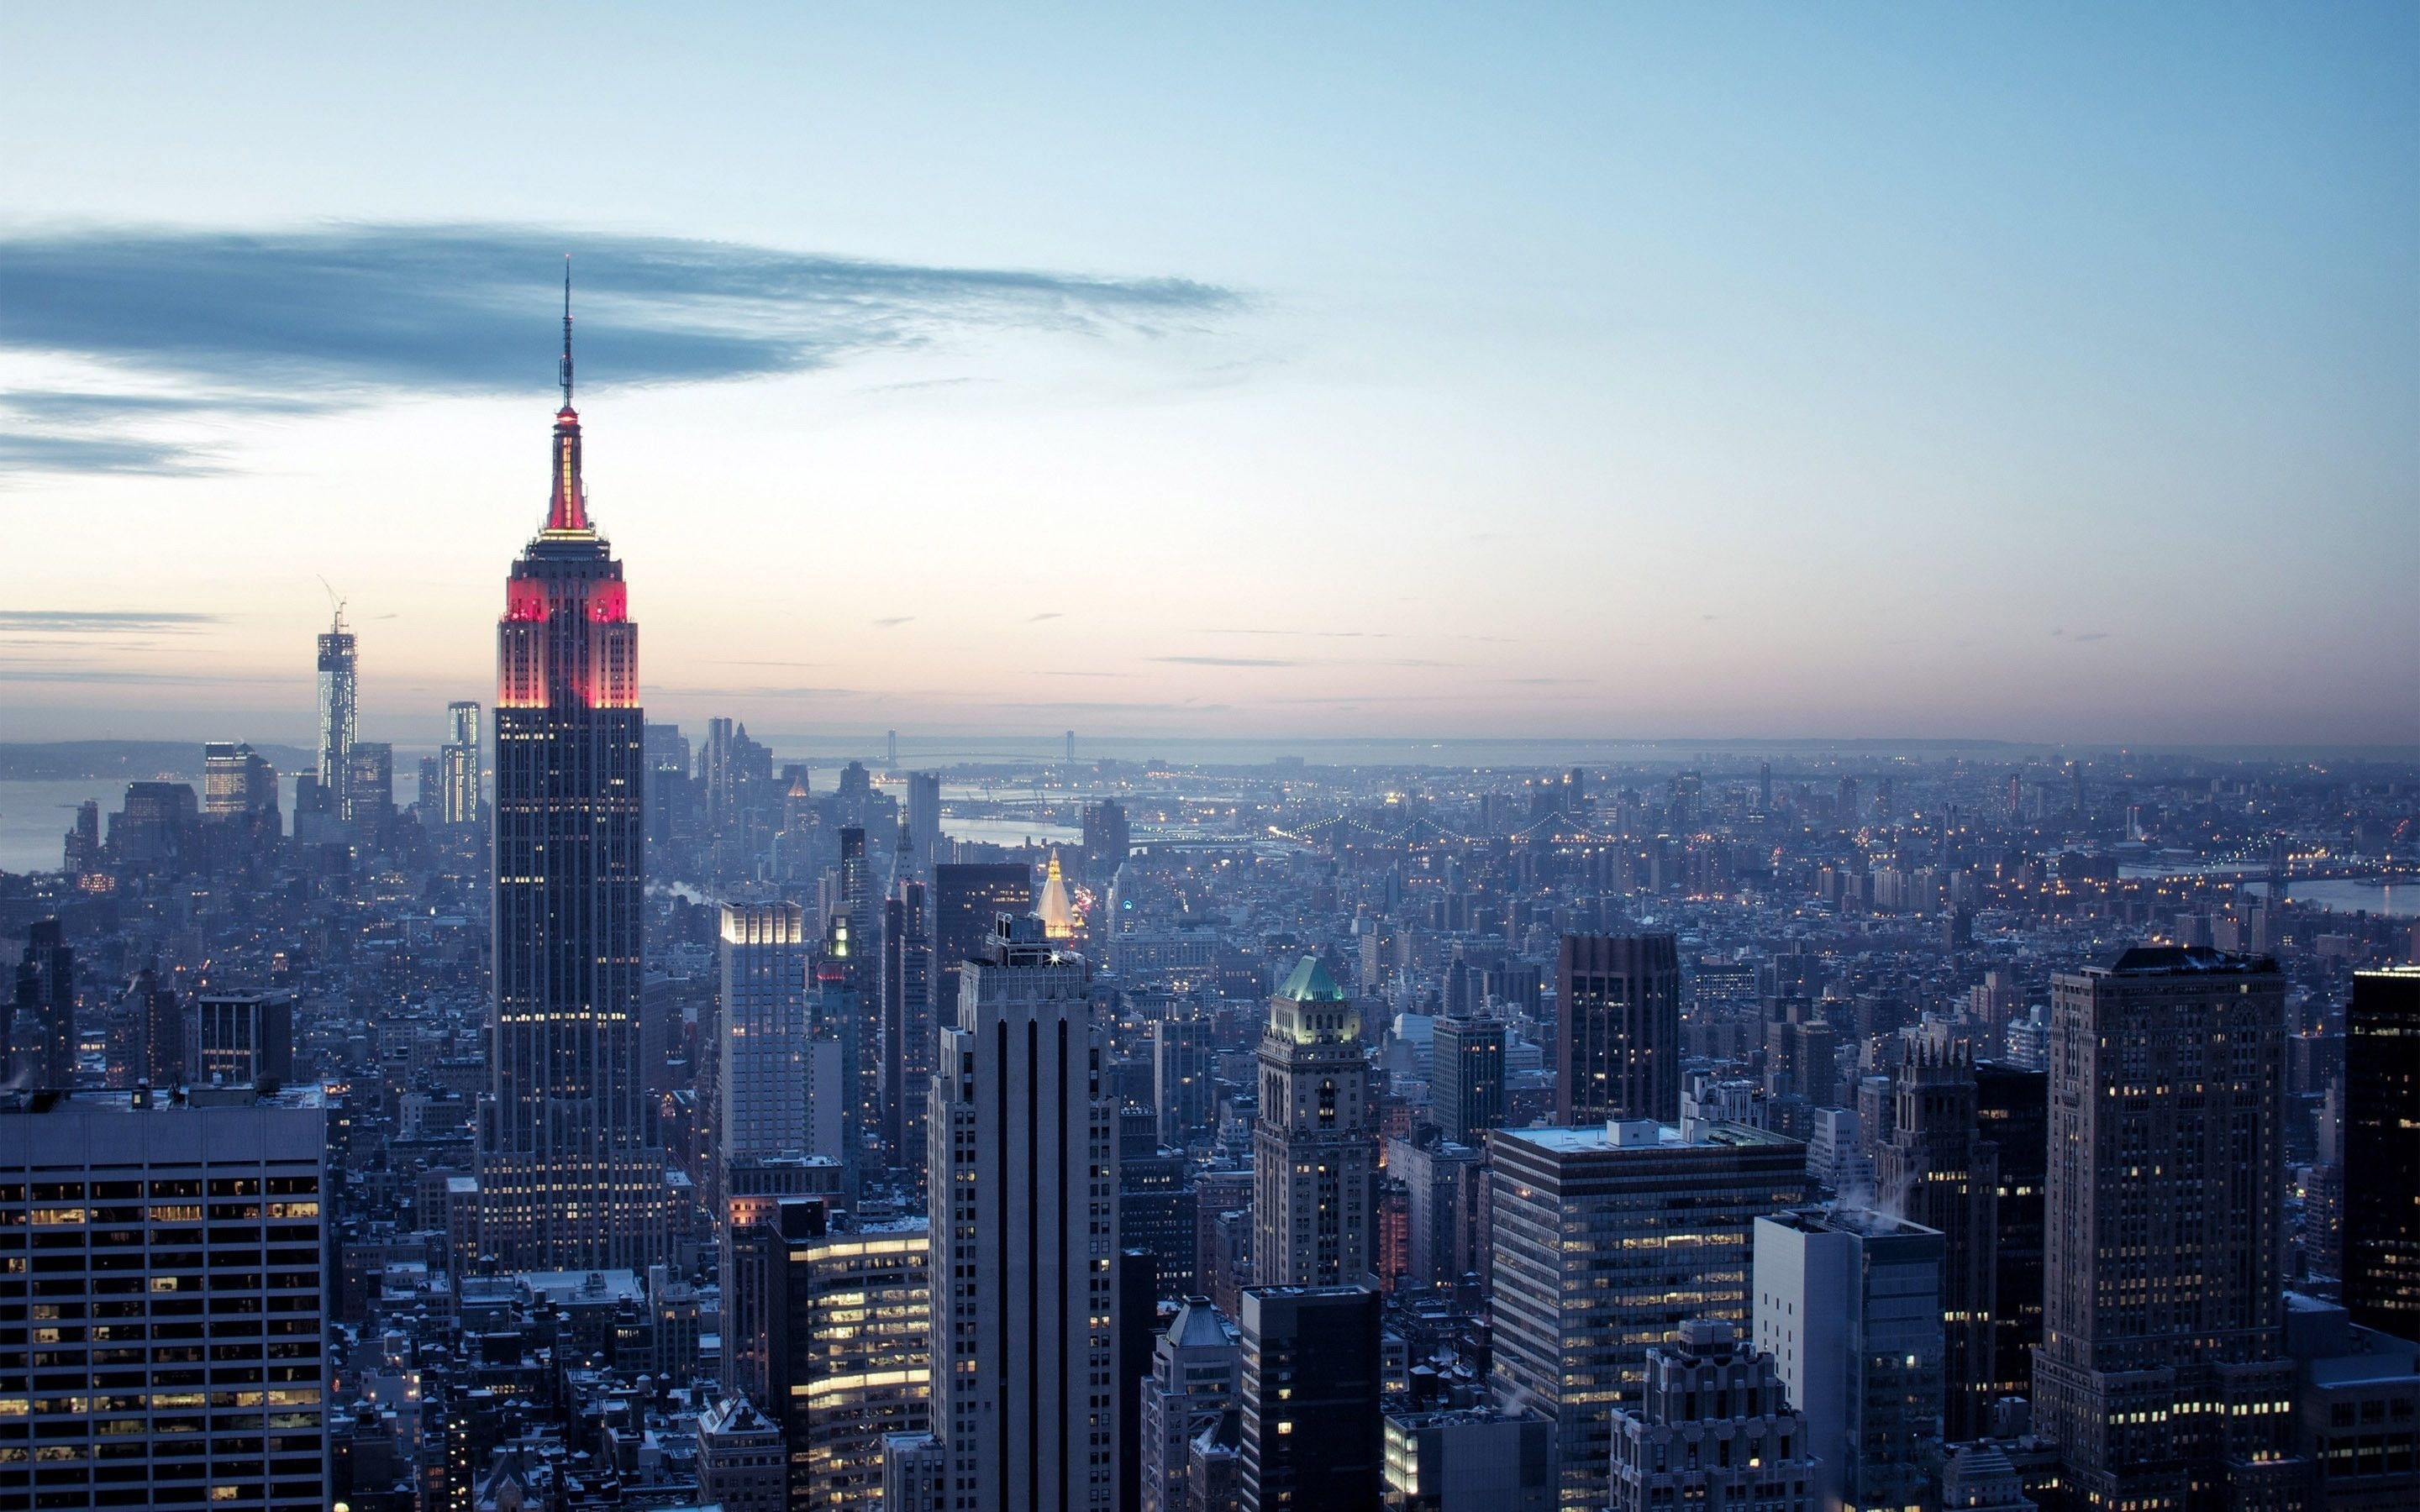 10 new new york city wallpaper hd full hd 1080p for pc background title new york city wallpapers hd pictures wallpaper wallpapers dimension 2880 x 1800 file type jpgjpeg voltagebd Gallery